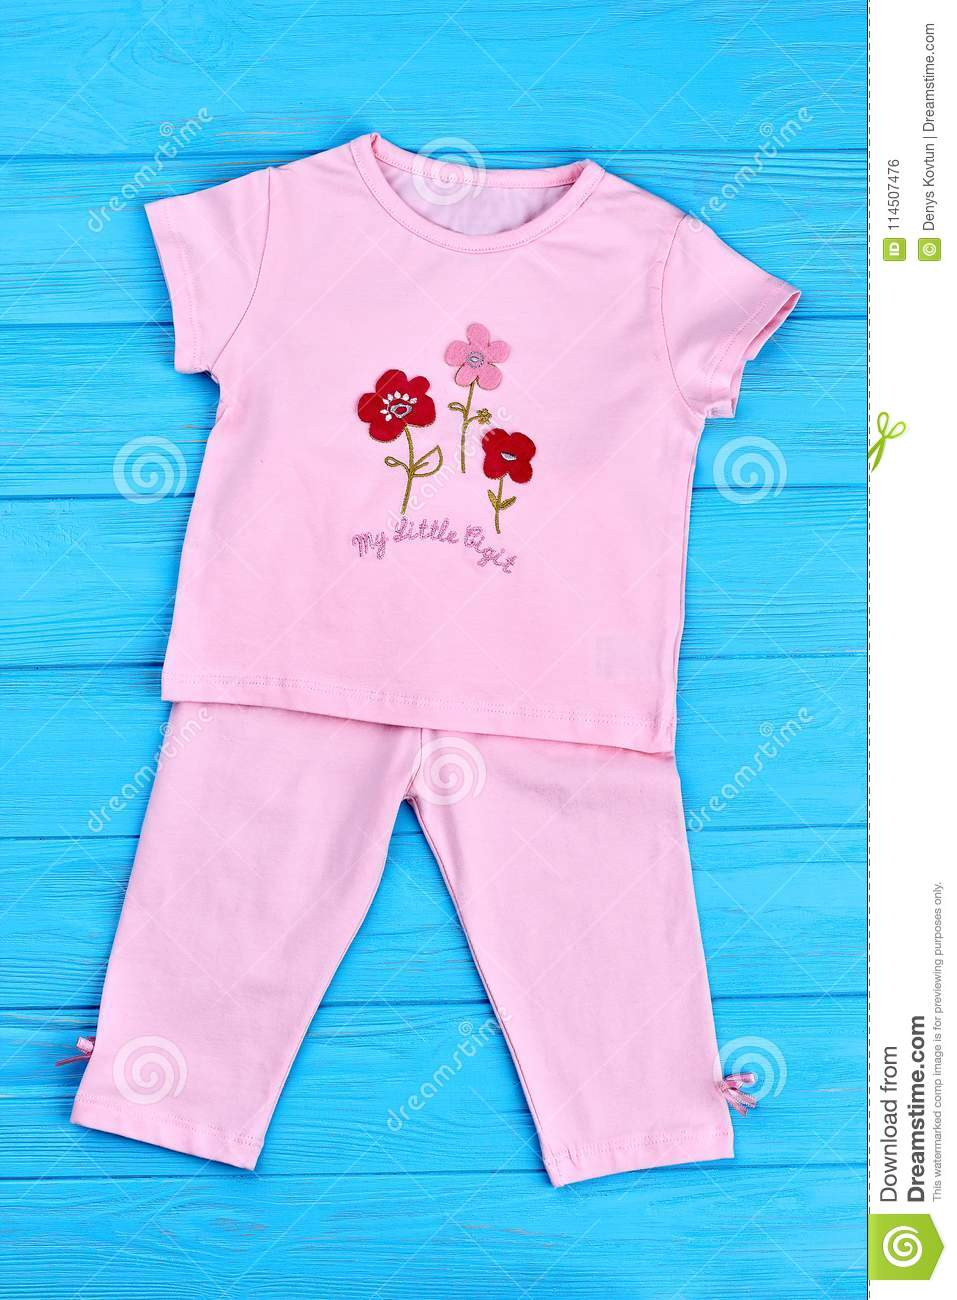 a46acb44340d Cute Summer Cotton Suit For Baby Girl. Stock Photo - Image of ...